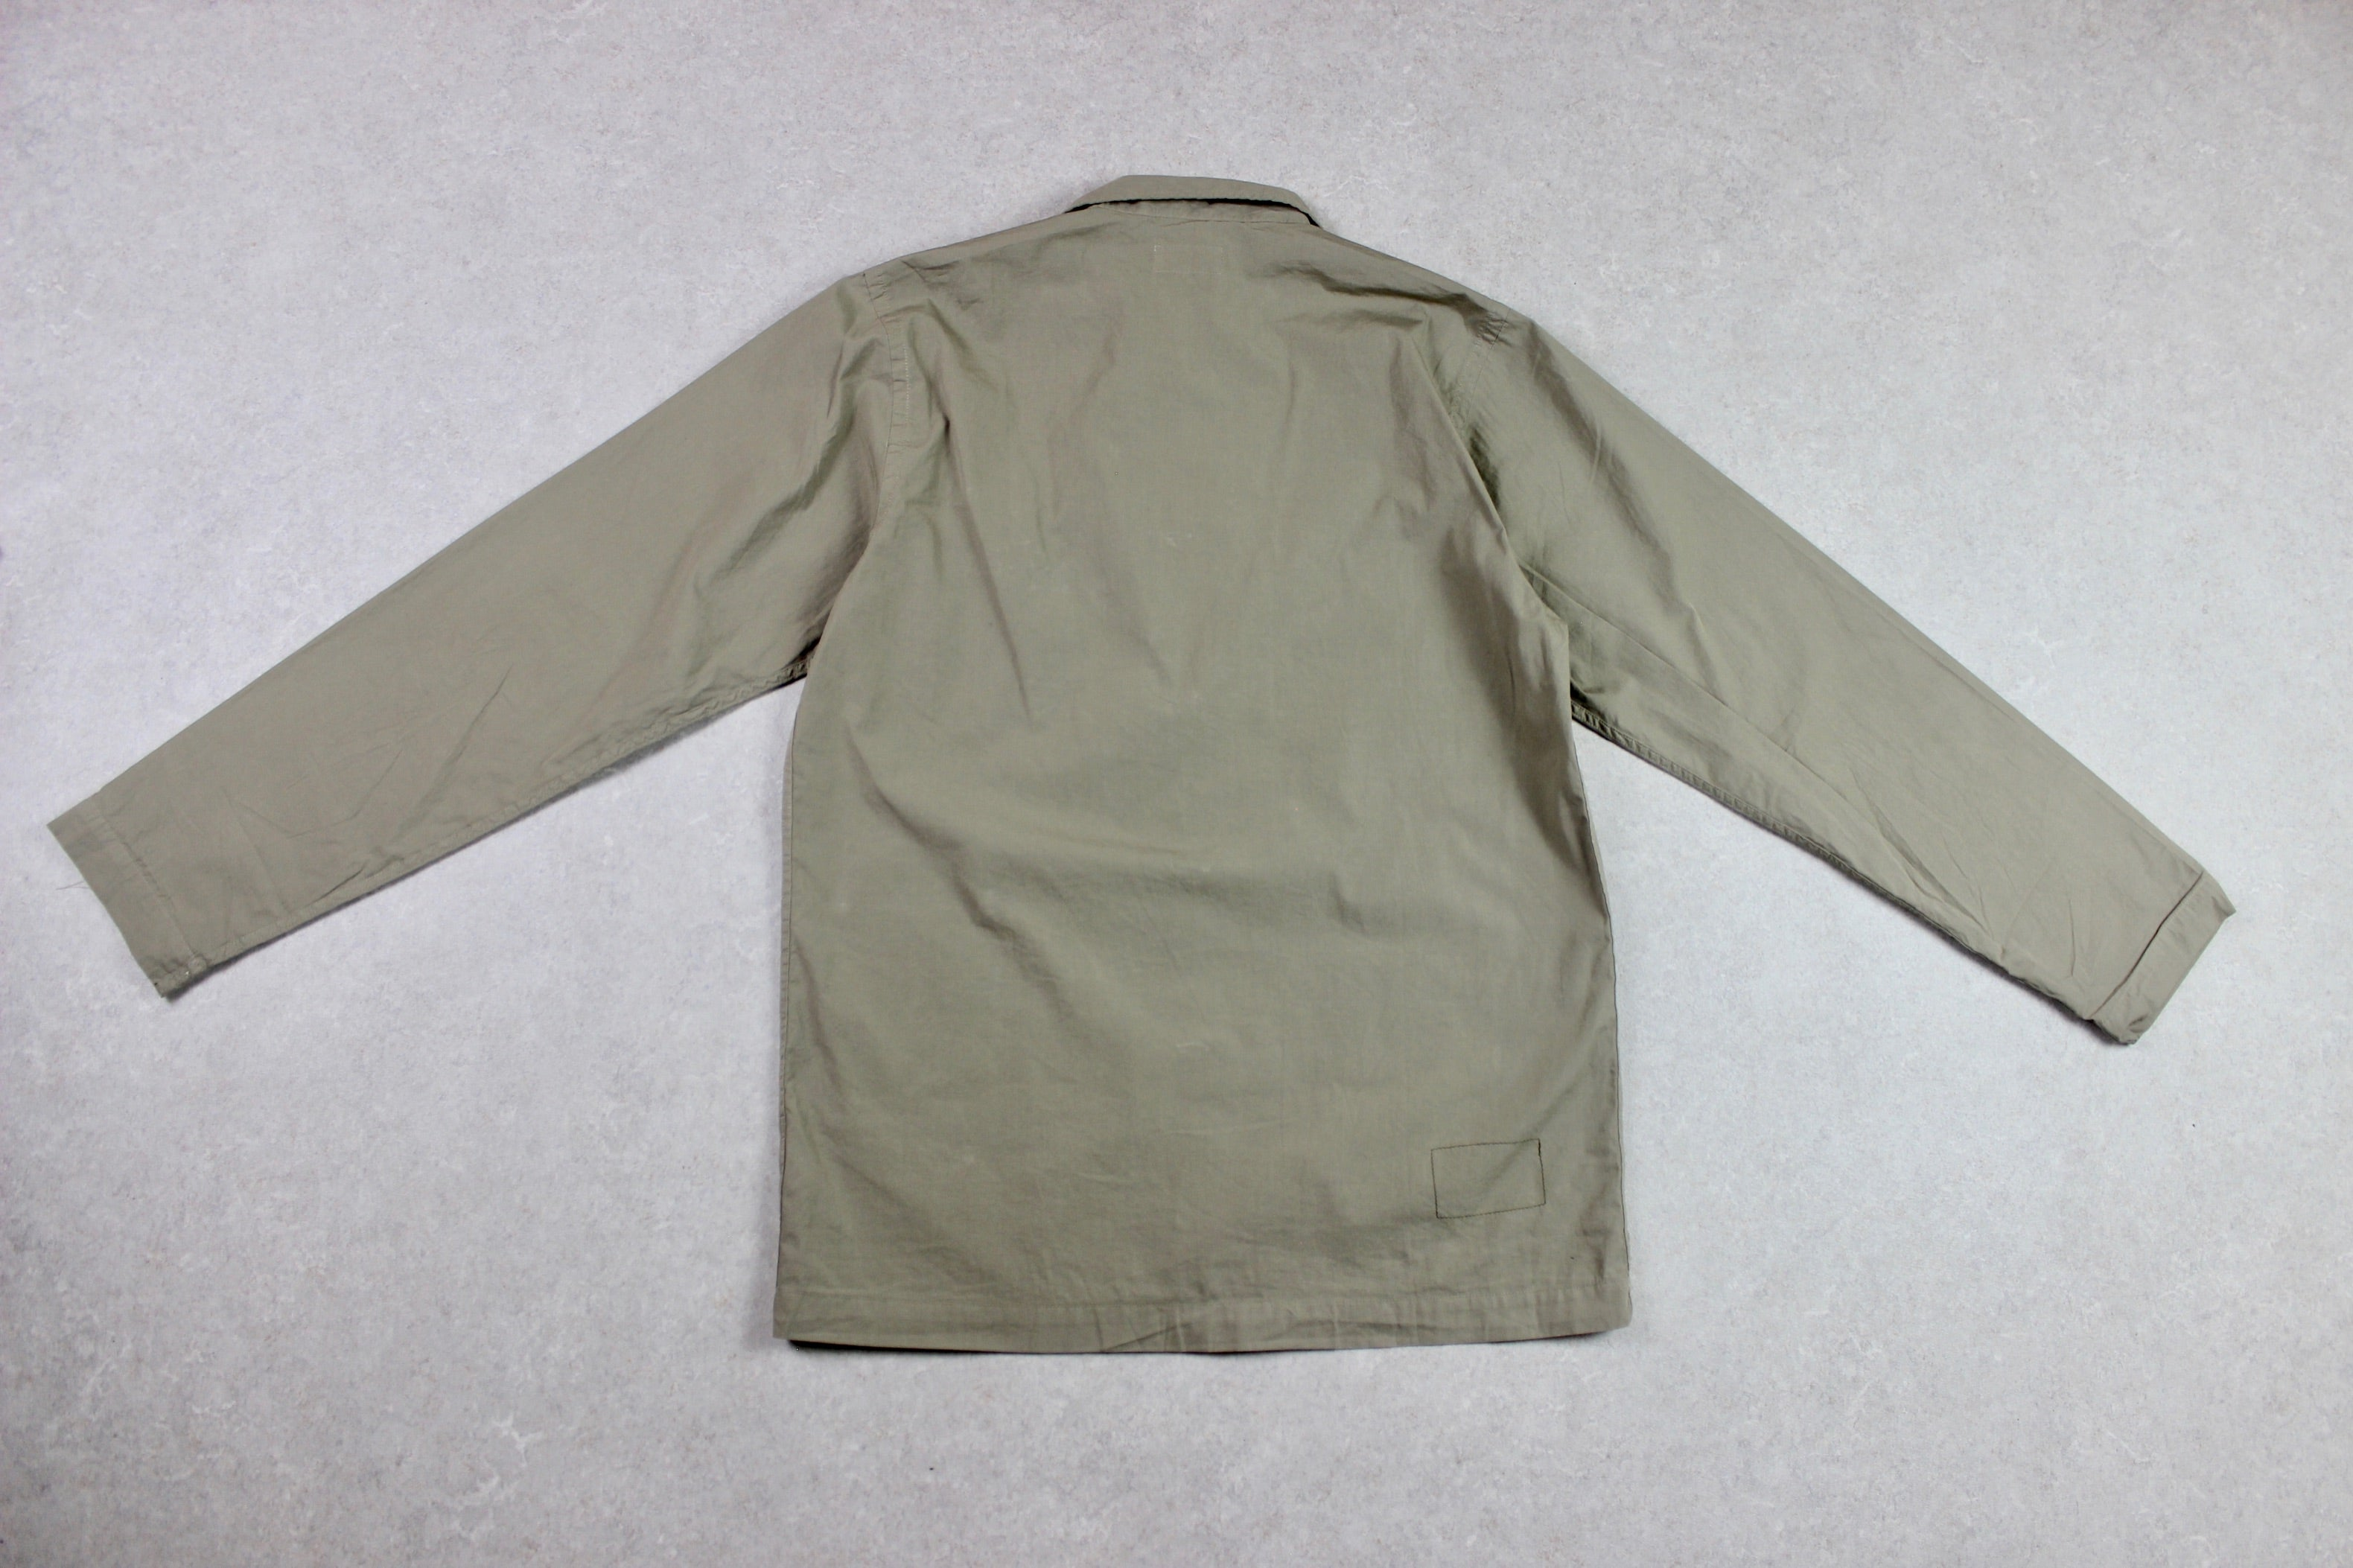 Universal Works - Chore Coat Jacket - Beige/Khaki - Small